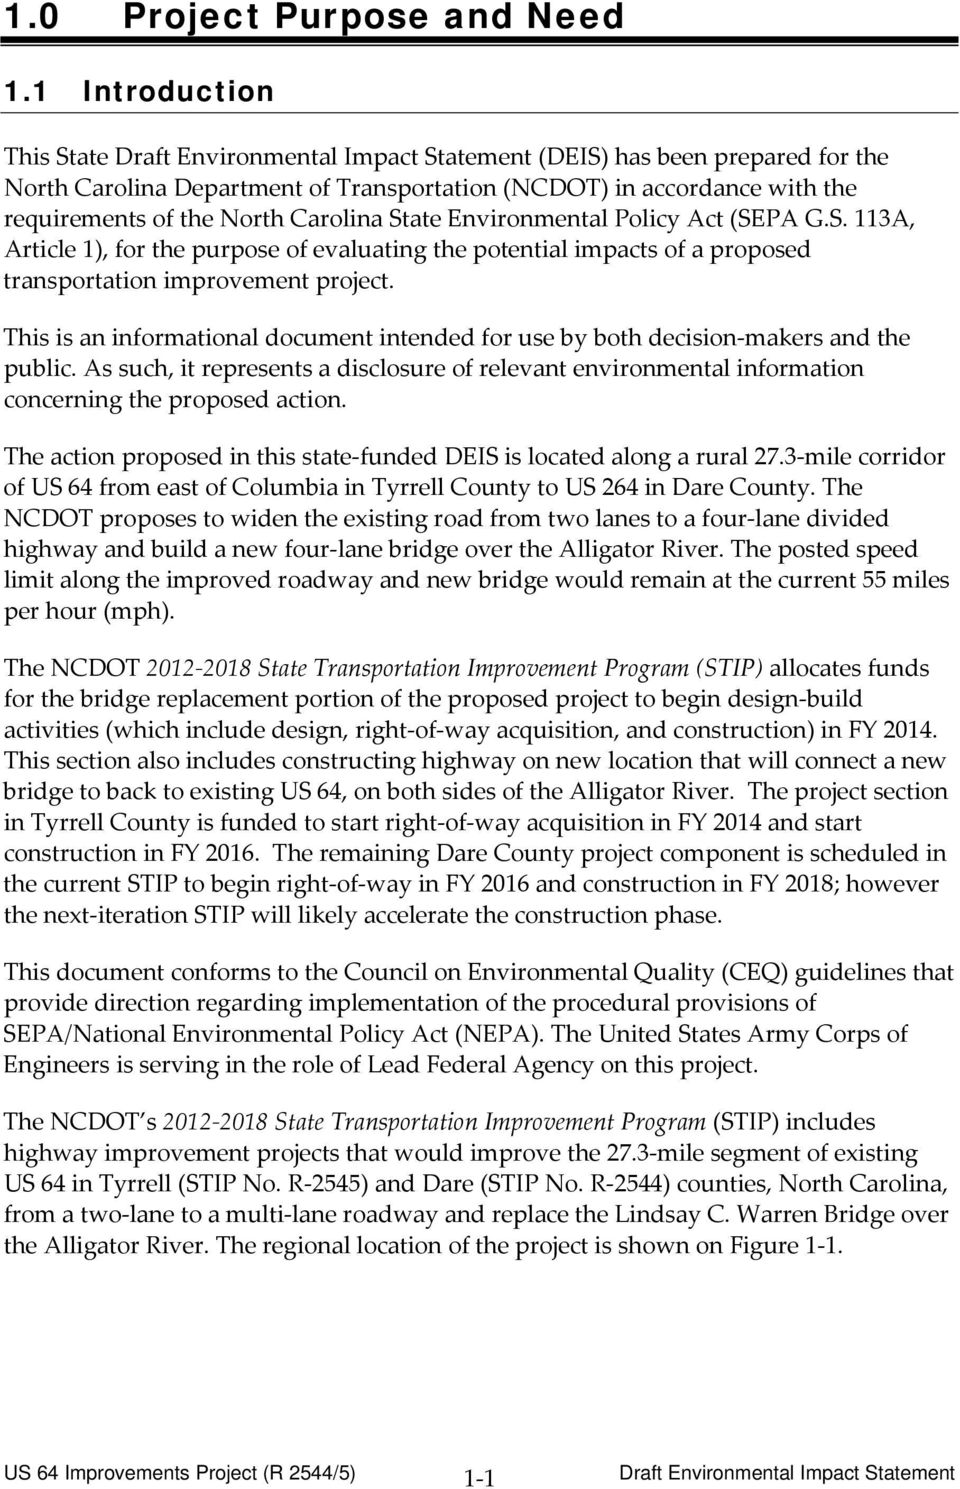 (SEPA G.S. 113A, Article 1), for the purpose of evaluating the potential impacts of a proposed transportation improvement project.